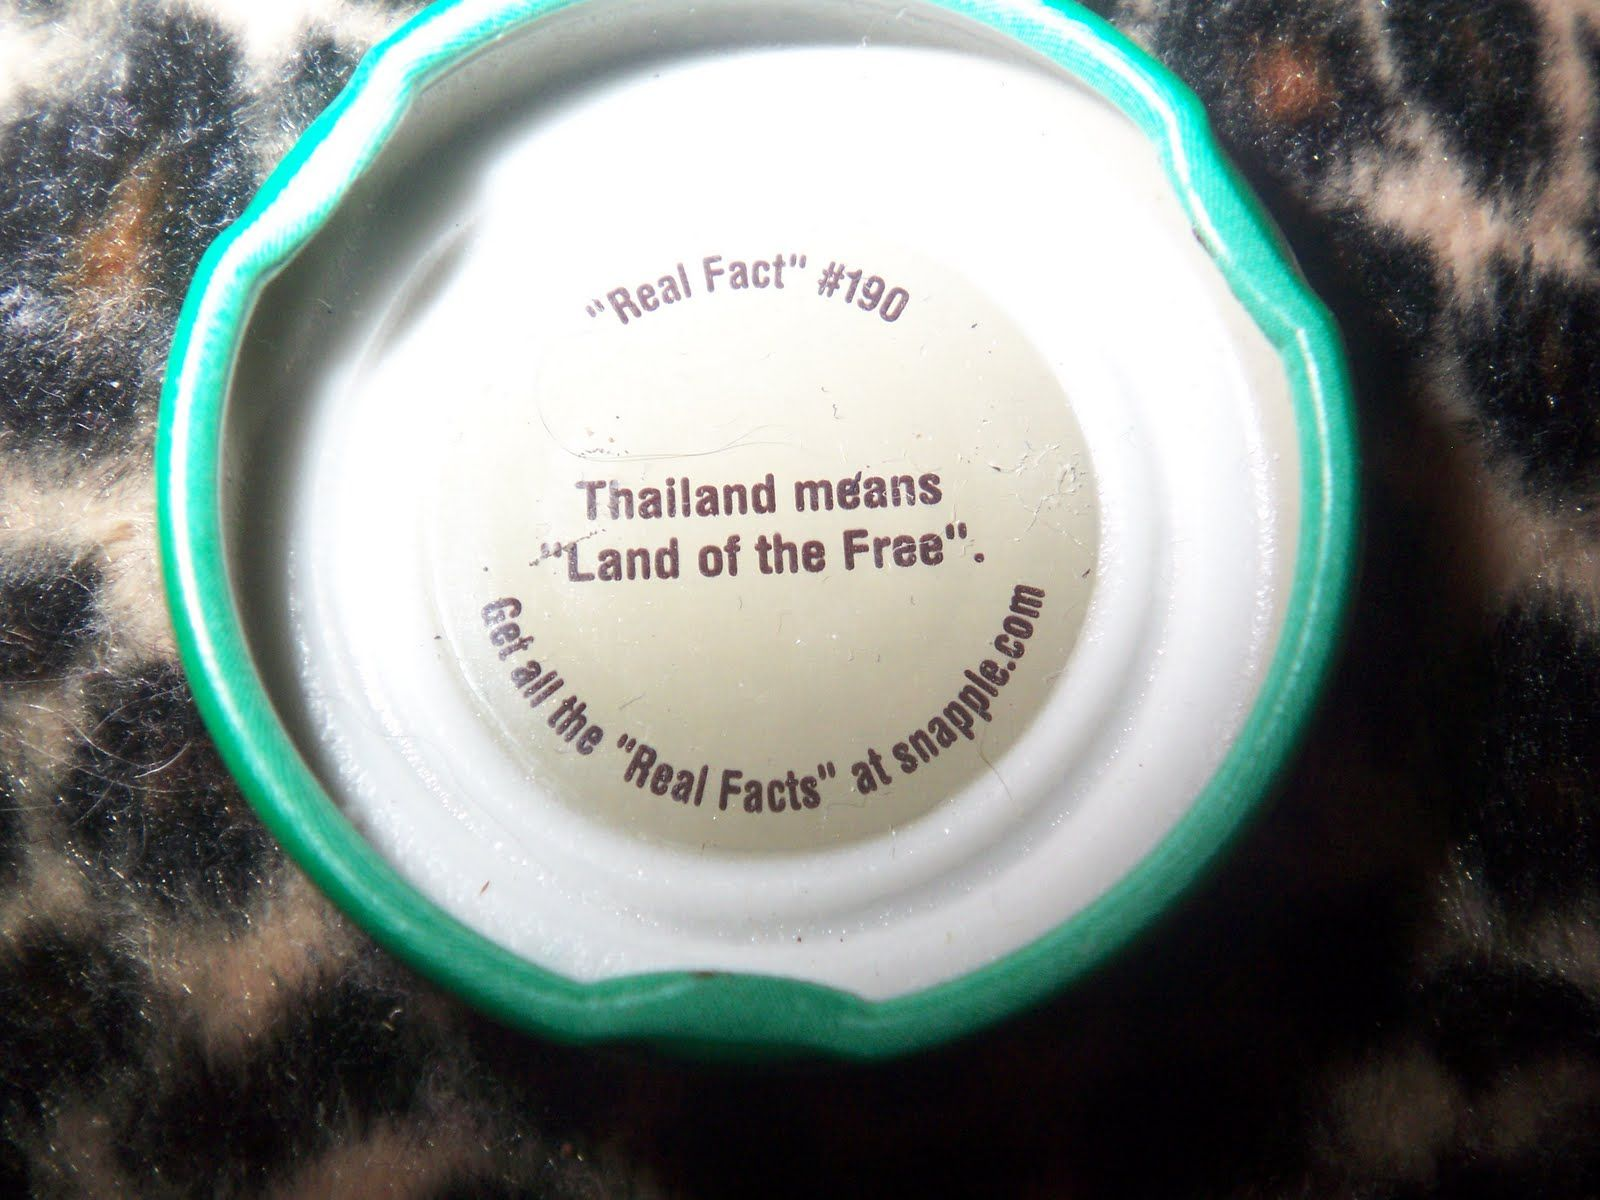 Thailand means 'Land of the Free'. Real facts, Facts